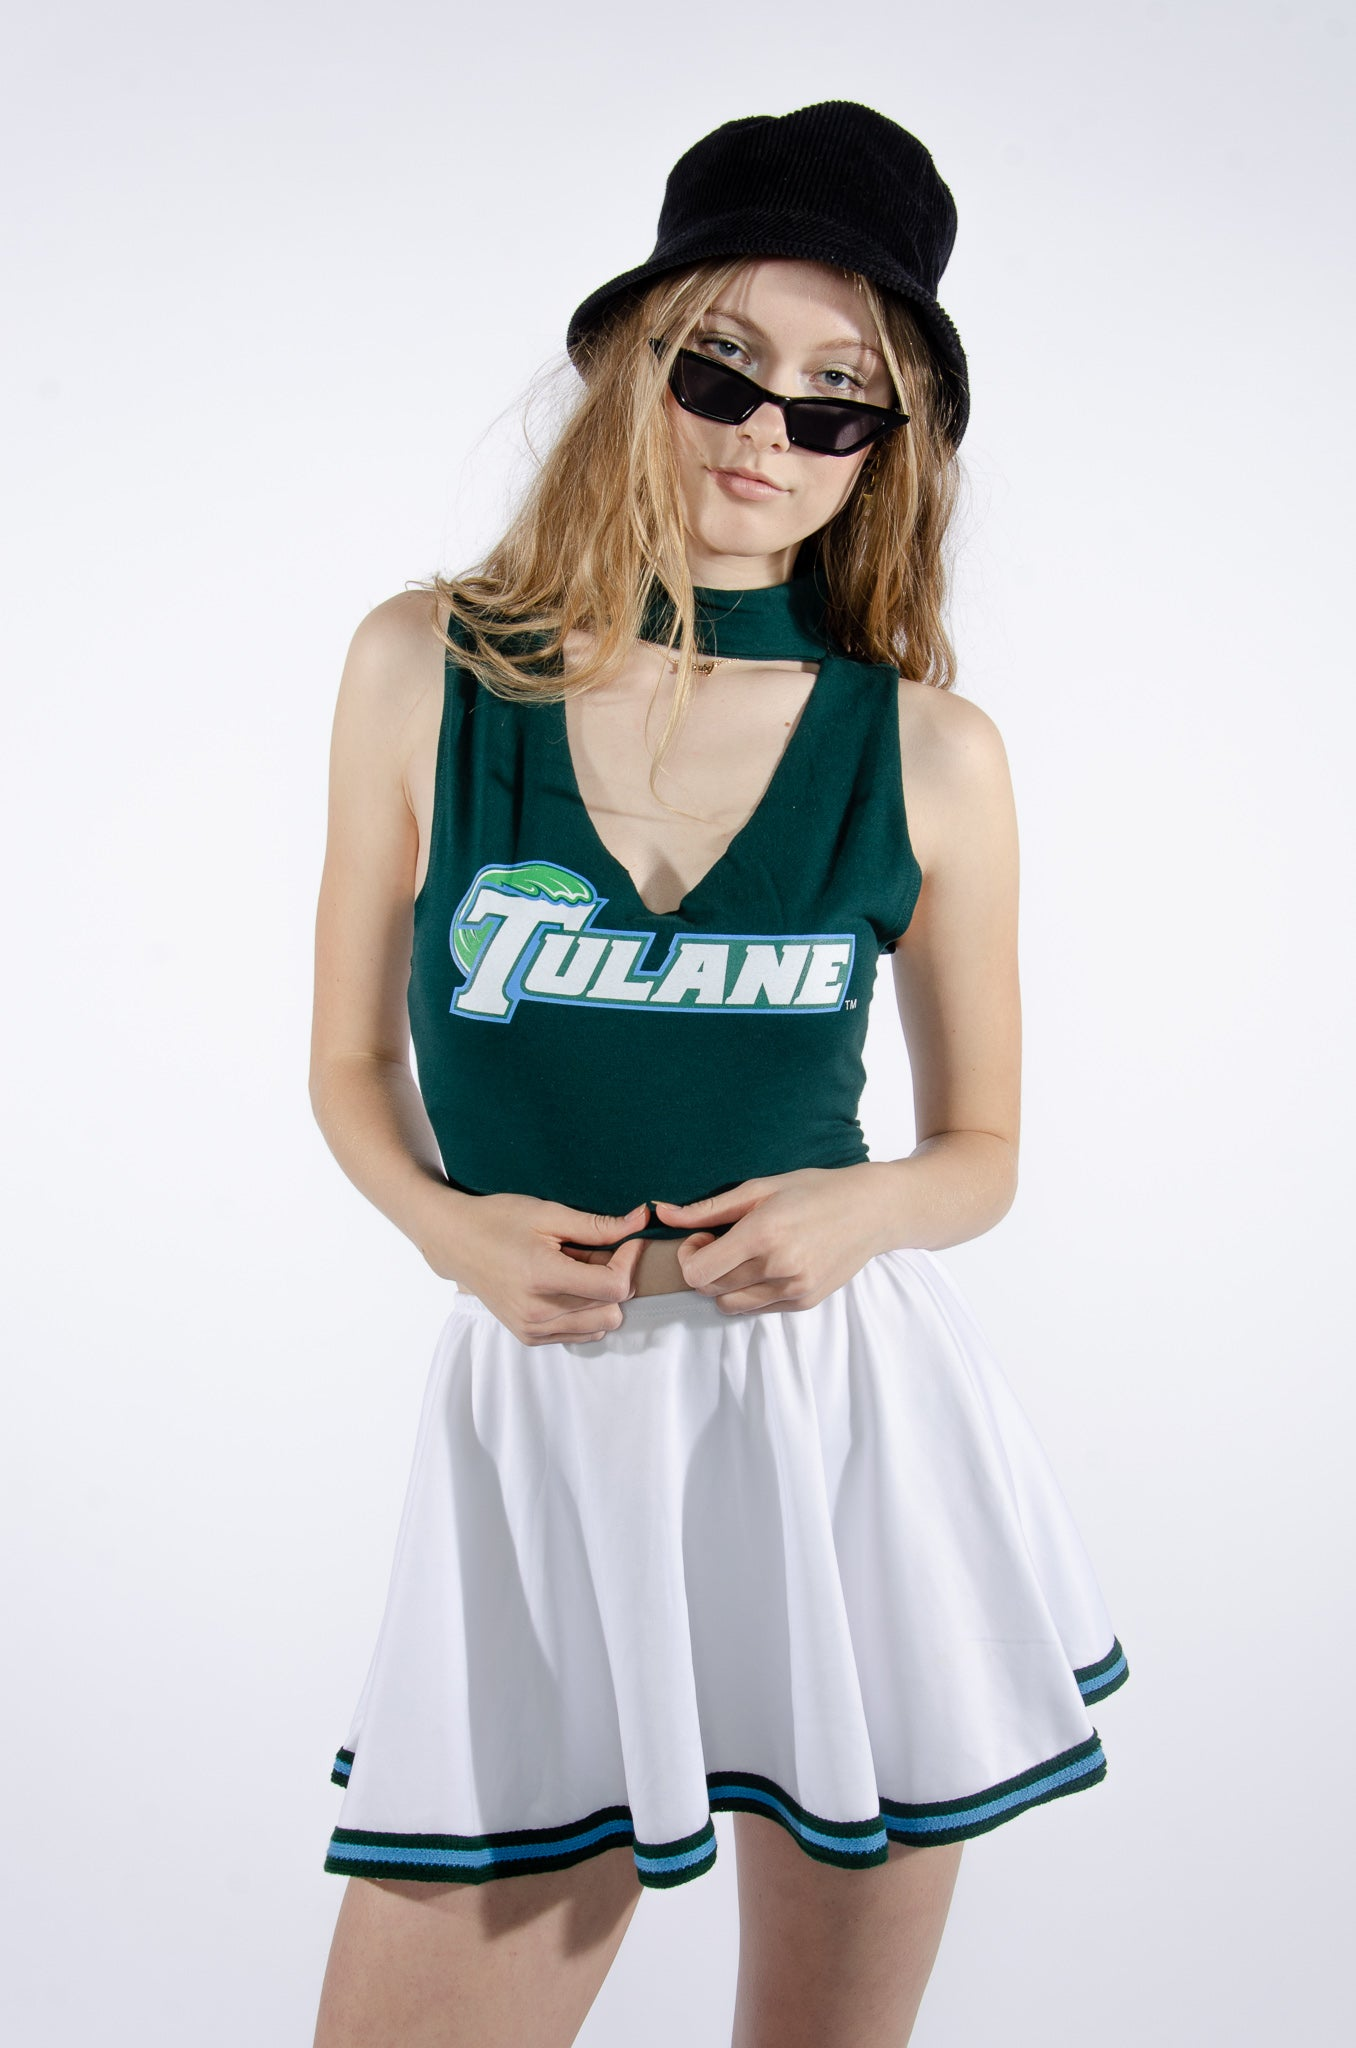 Tulane Cutout Top - Hype and Vice